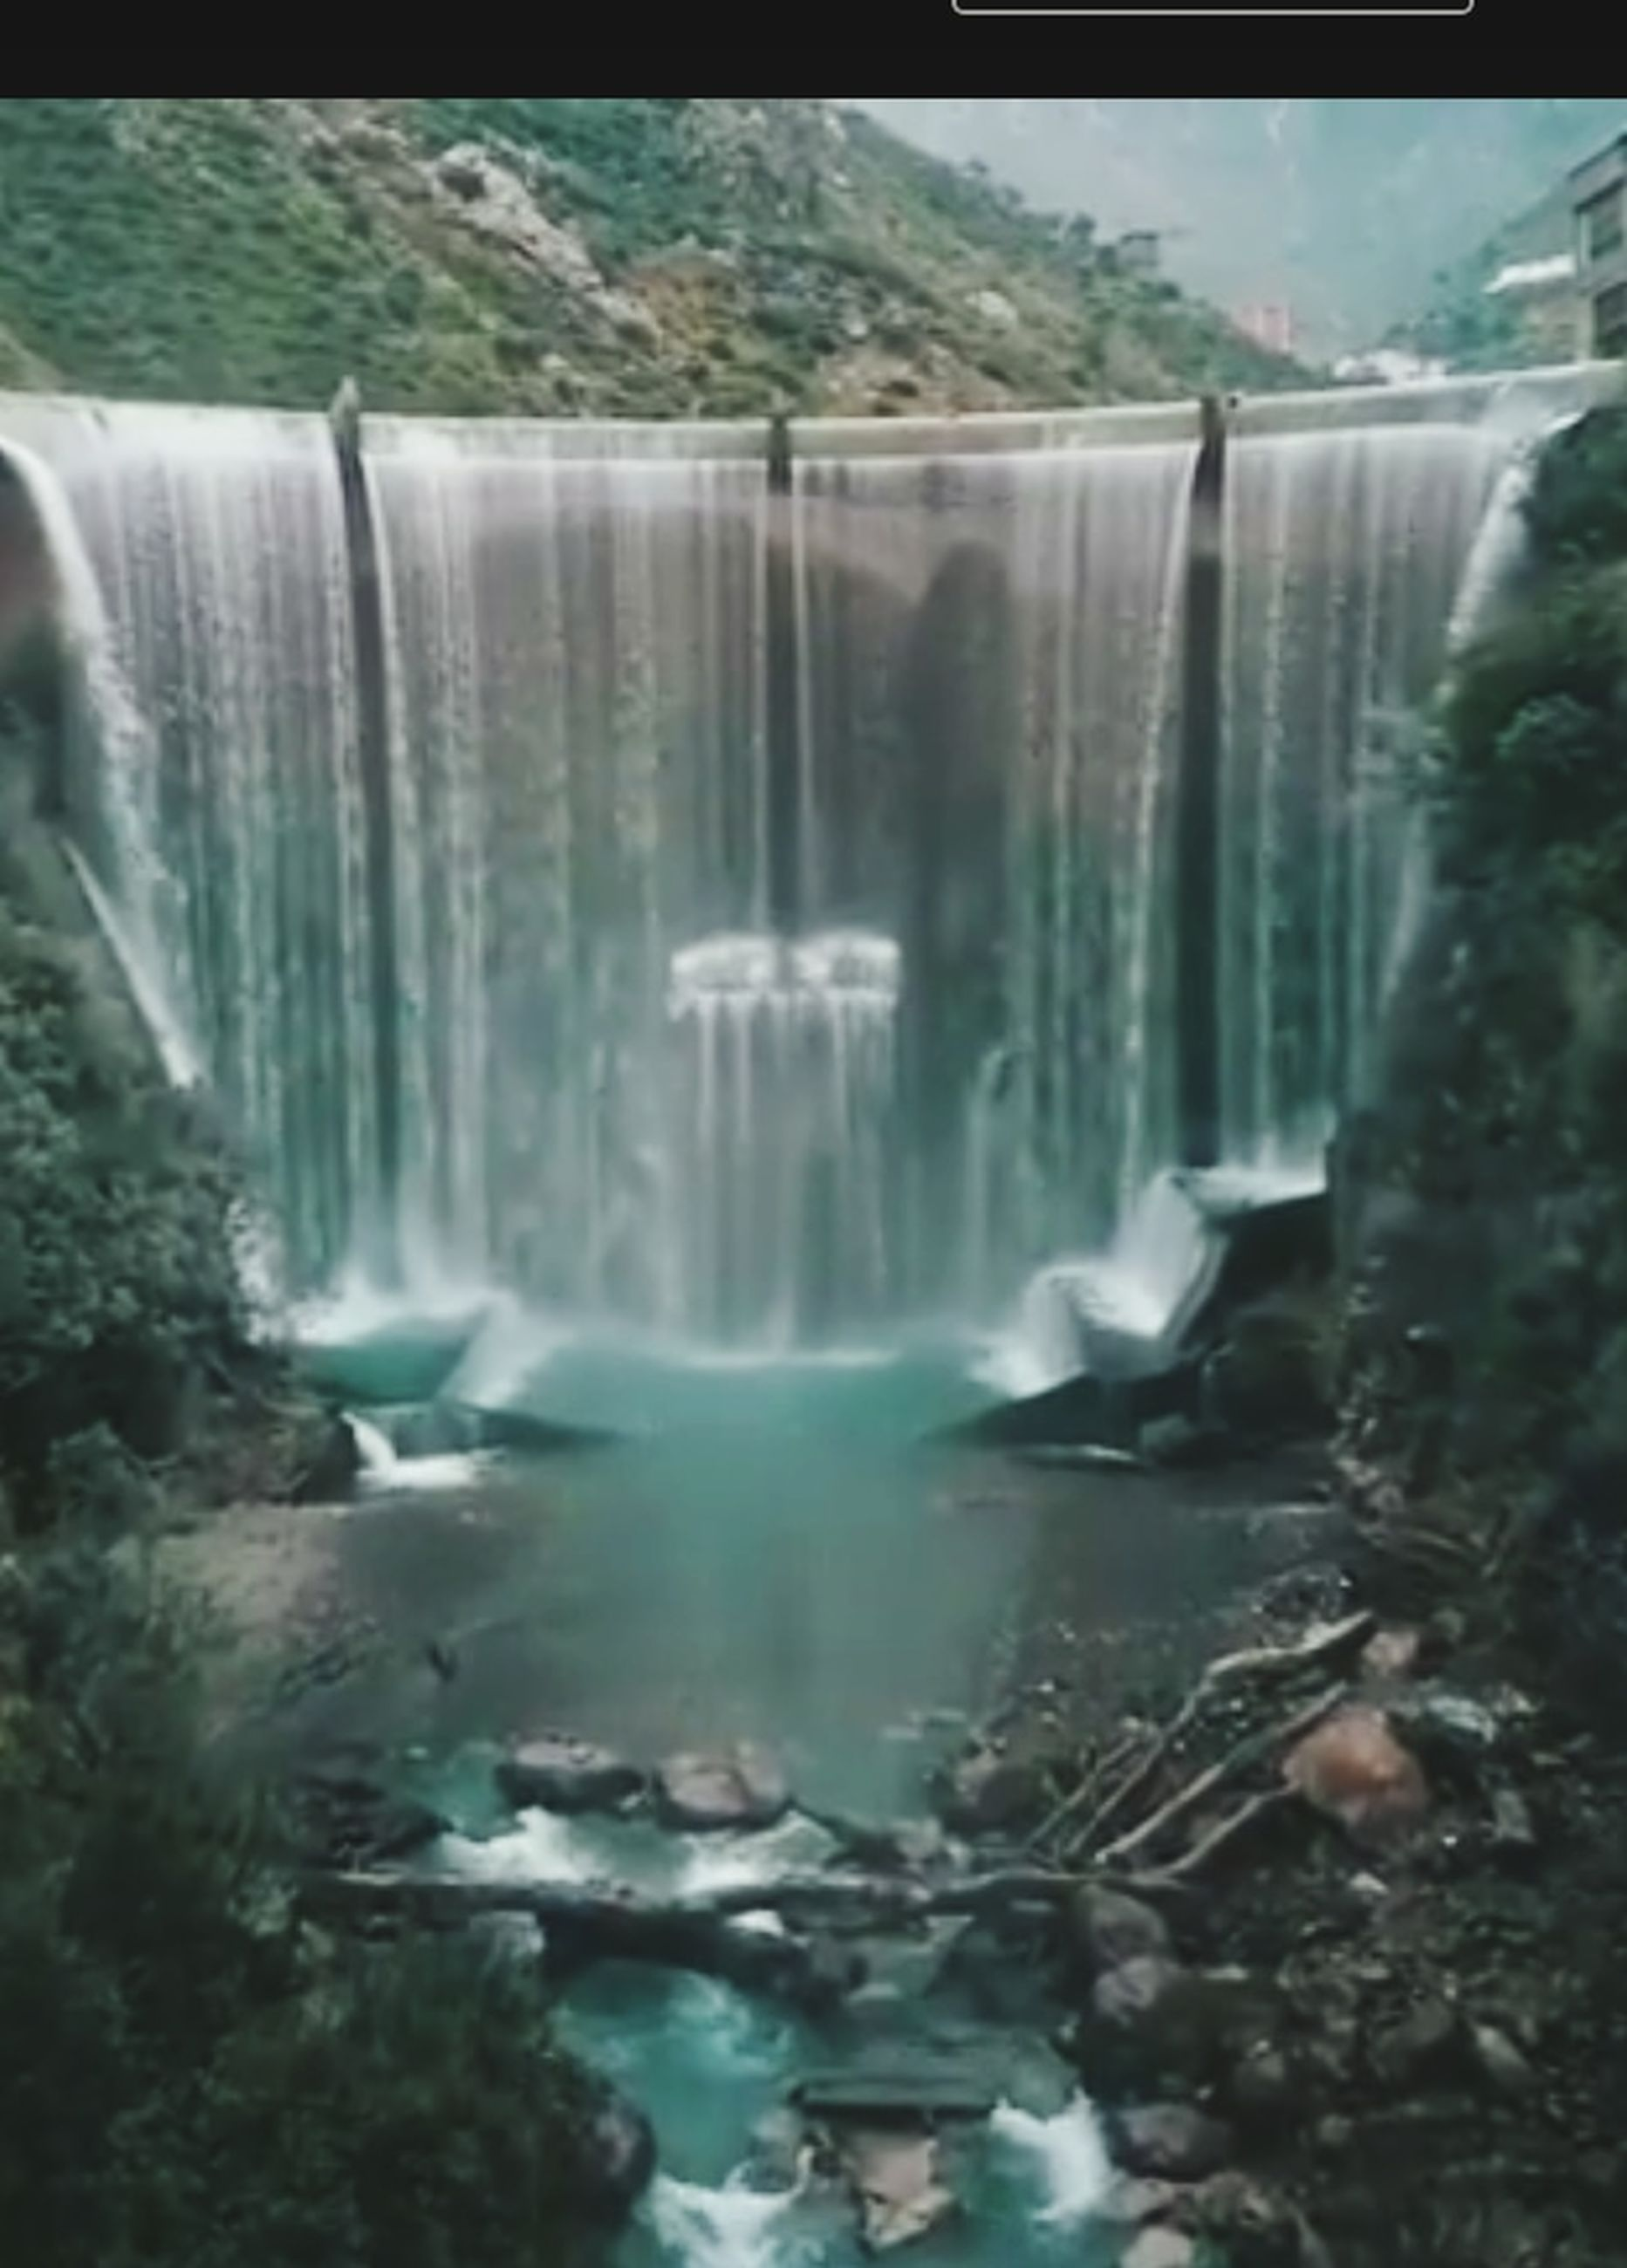 water, waterfall, beauty in nature, flowing water, scenics - nature, nature, forest, long exposure, motion, no people, environment, day, flowing, blurred motion, tree, land, plant, outdoors, rock, running water, purity, power in nature